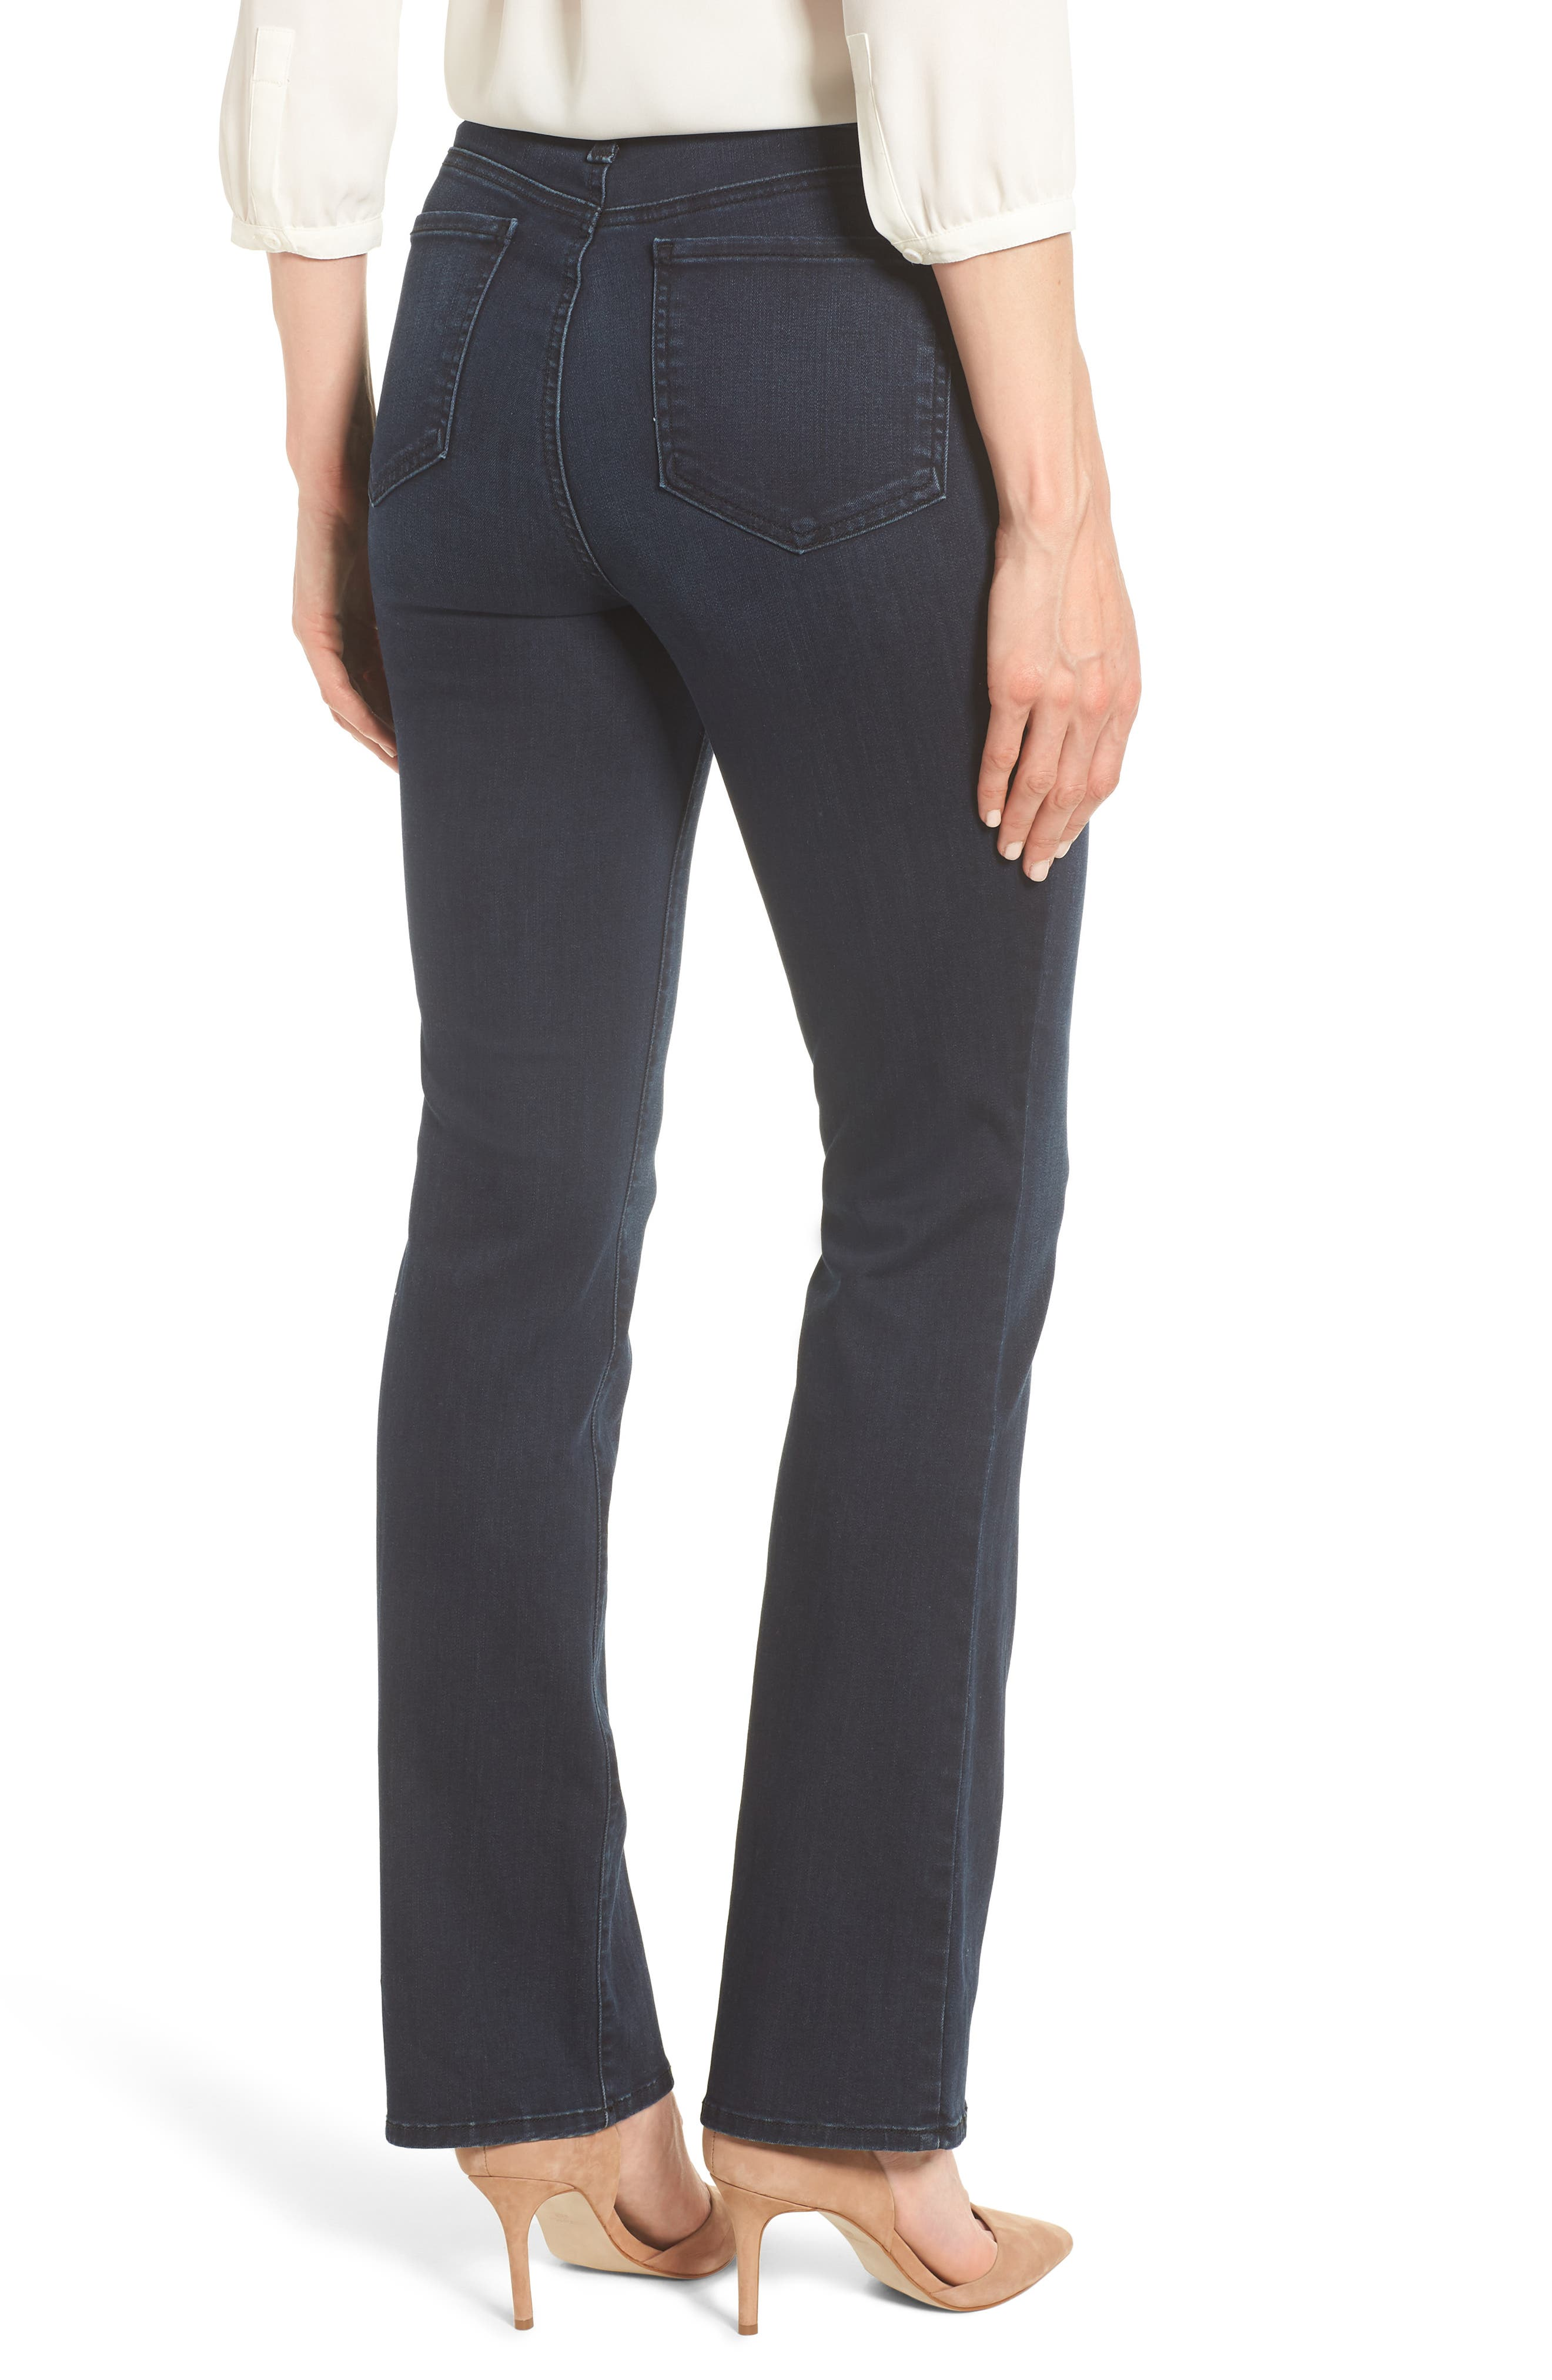 Barbara Bootcut Stretch Skinny Jeans,                             Alternate thumbnail 2, color,                             407